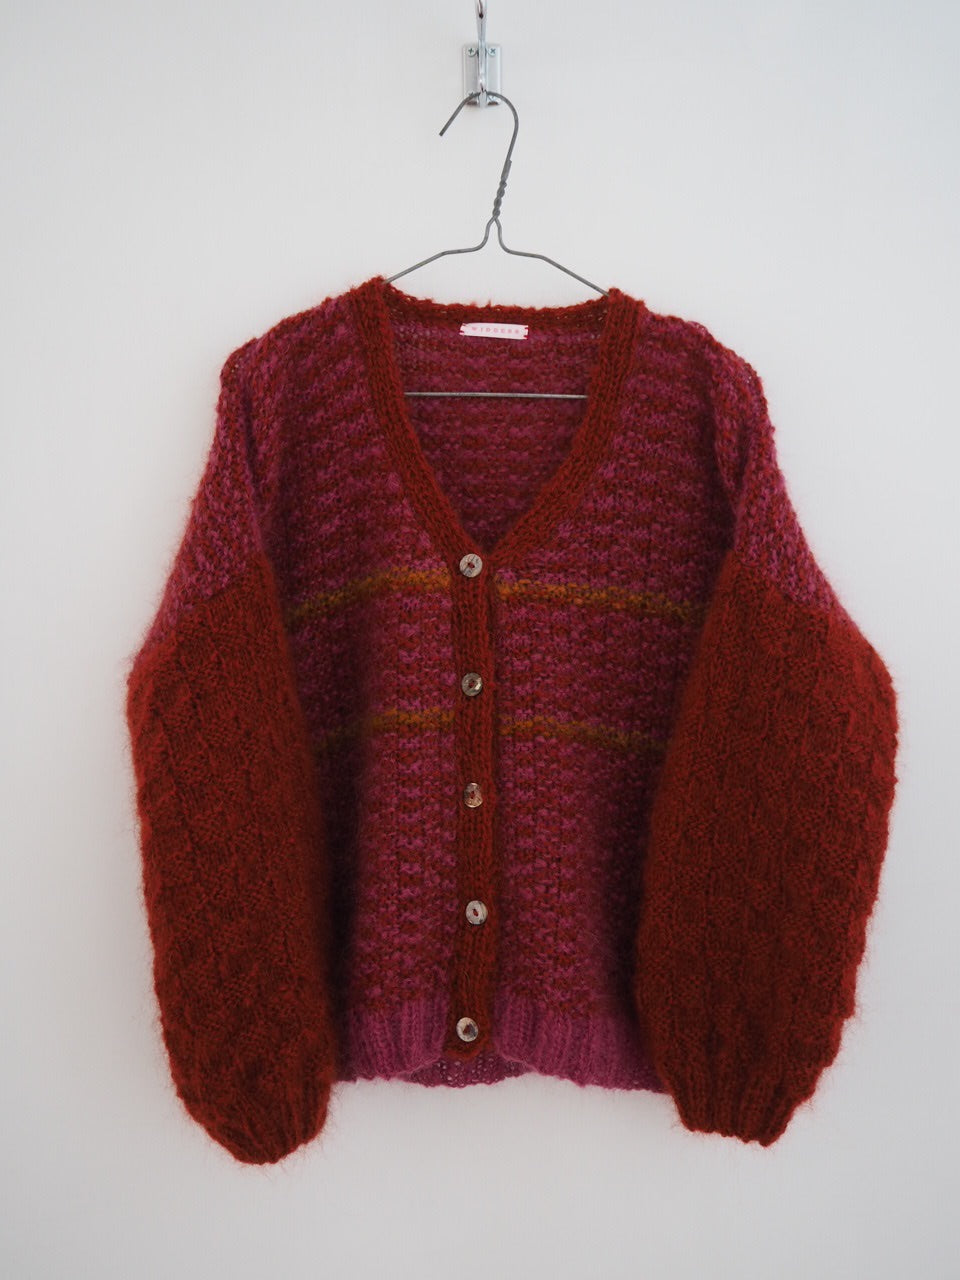 Hand knit cardi - Rhubarb + orange + paprika